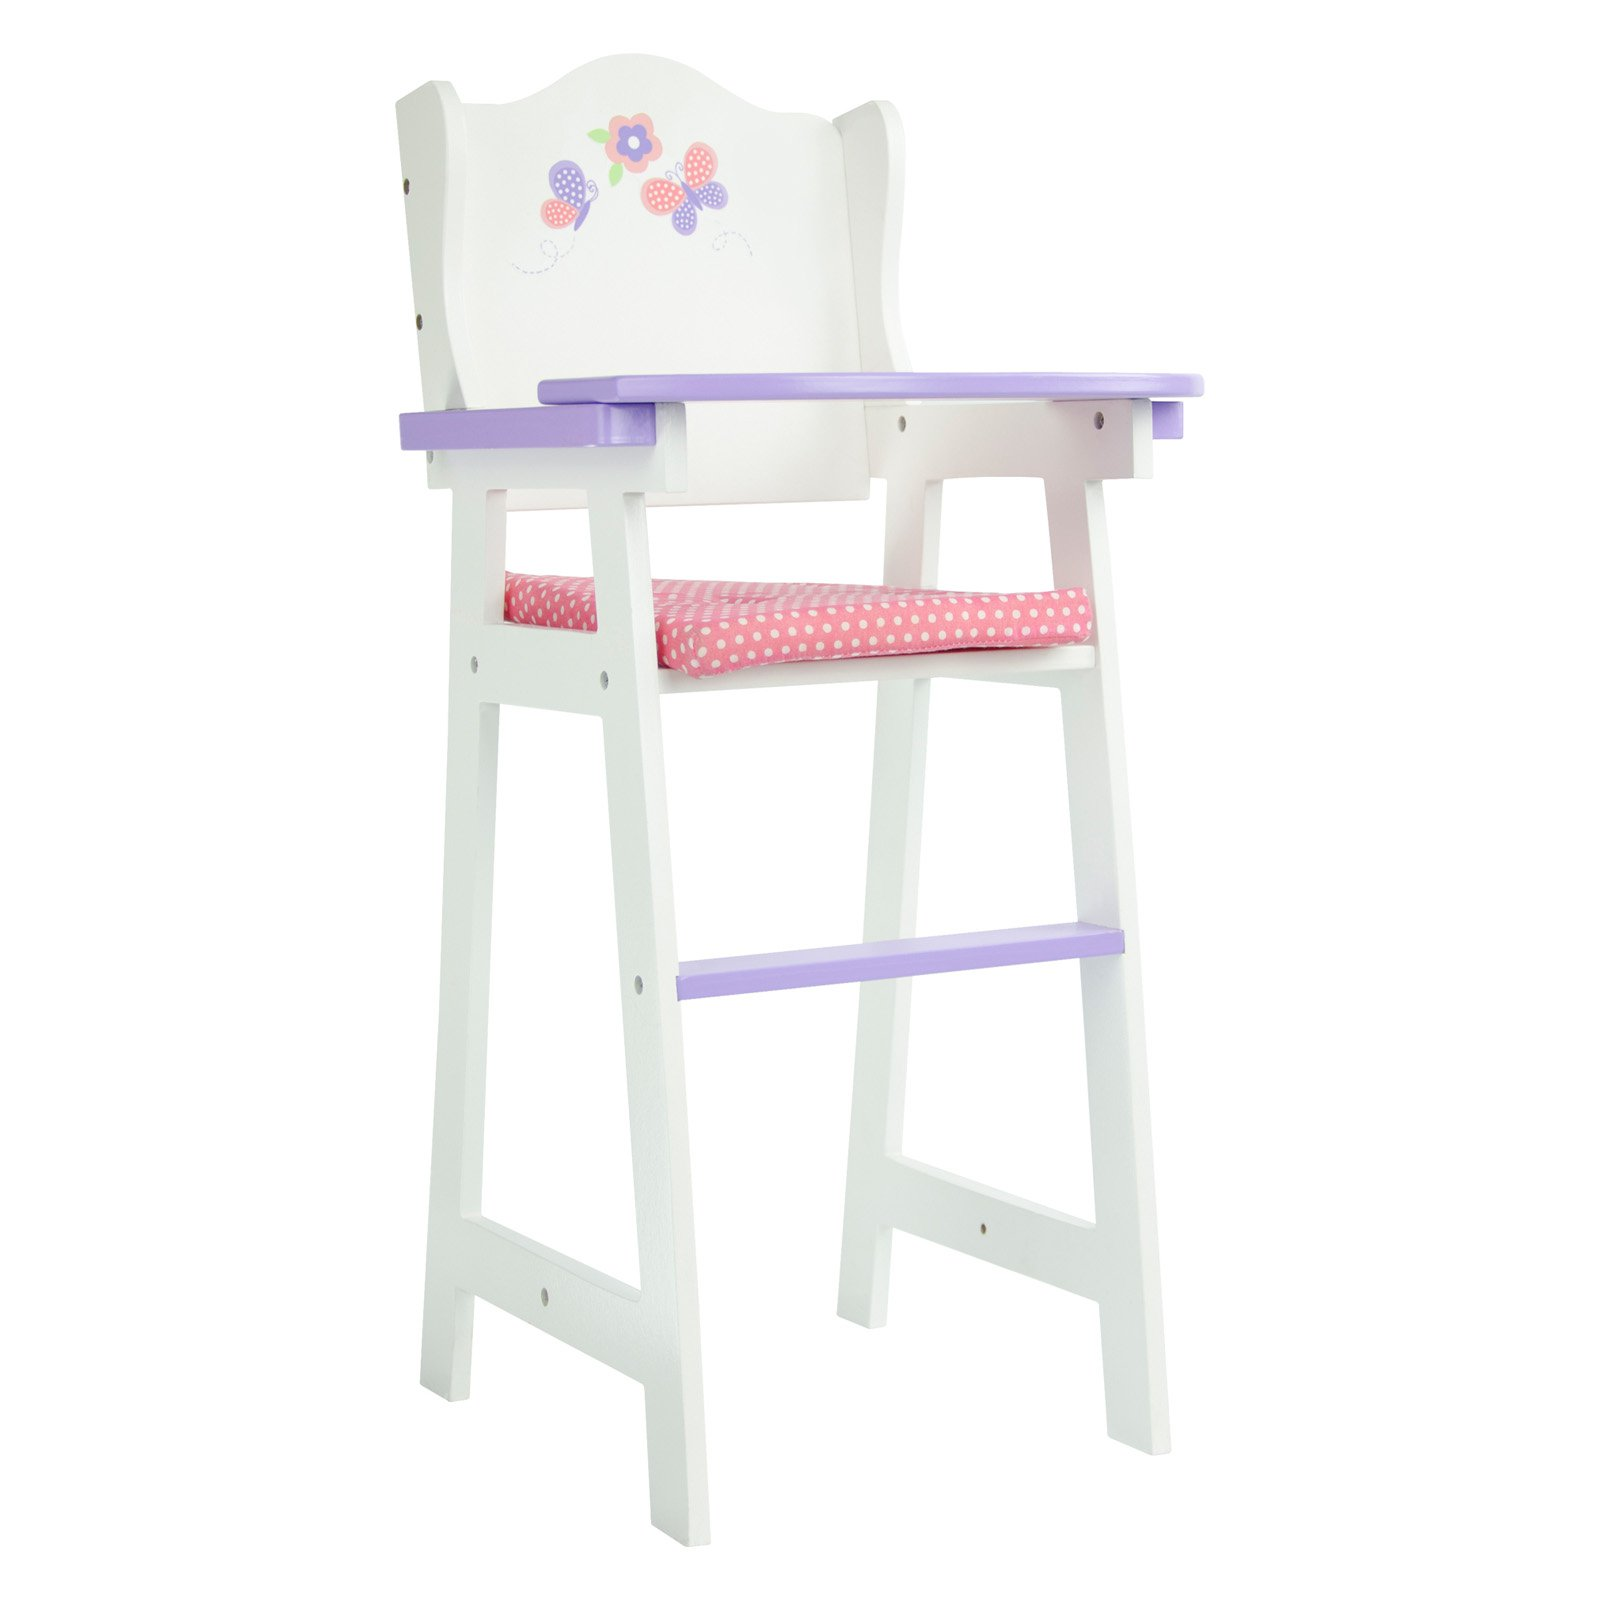 Surprising Olivias Little World Little Princess Baby Doll High Chair Walmart Com Gmtry Best Dining Table And Chair Ideas Images Gmtryco